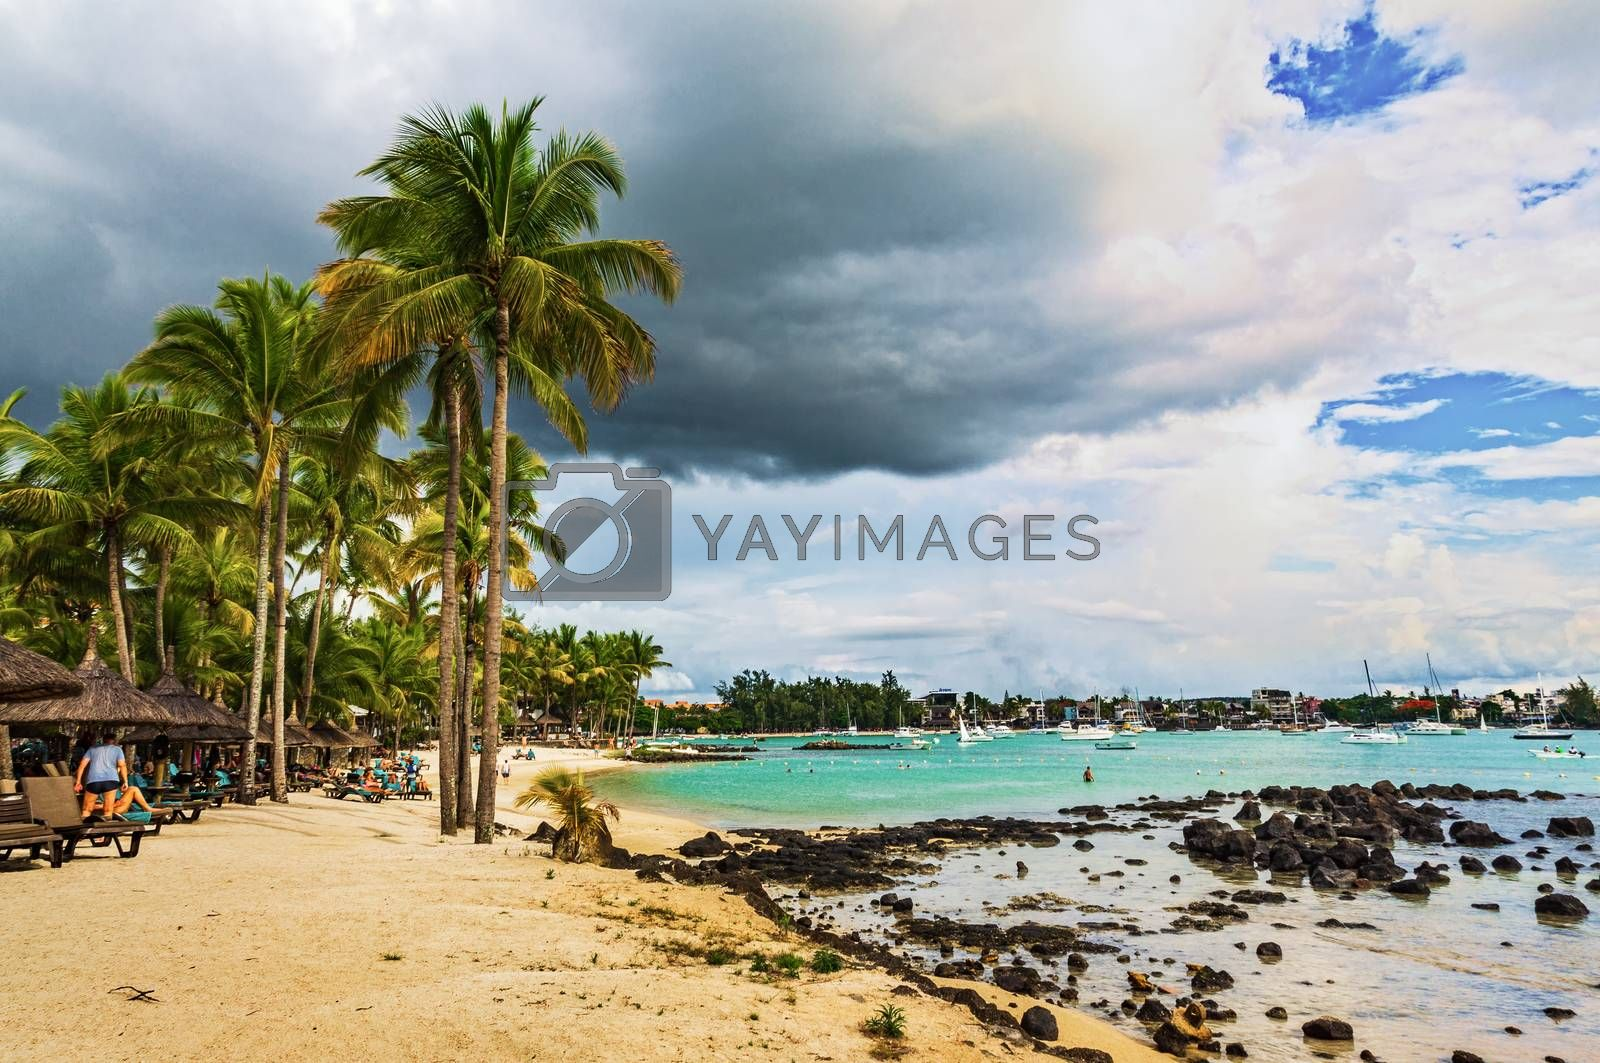 Sea beach with boats and yachts on the water and black stones by VladimirZubkov